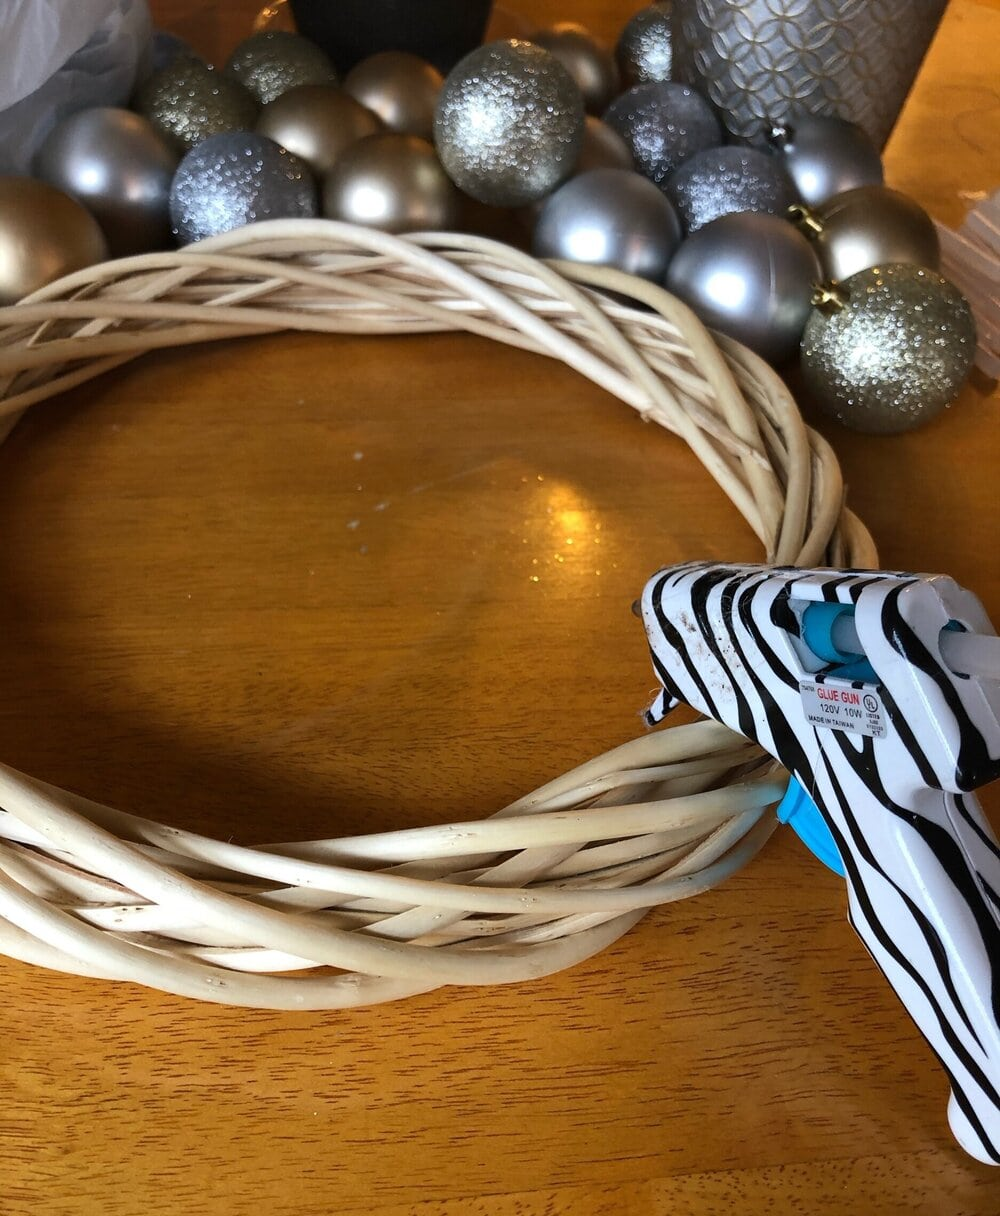 Missouri Girl DIY $13 New Years Eve Wreath. An easy and inexpensive craft project to ad a festive touch to your New Years Eve. Missouri Girl. Missouri Girl Blog. #newyearseve #newyearsevedecor #blackgoldandsilverdecor #holidays #MissouriGirl